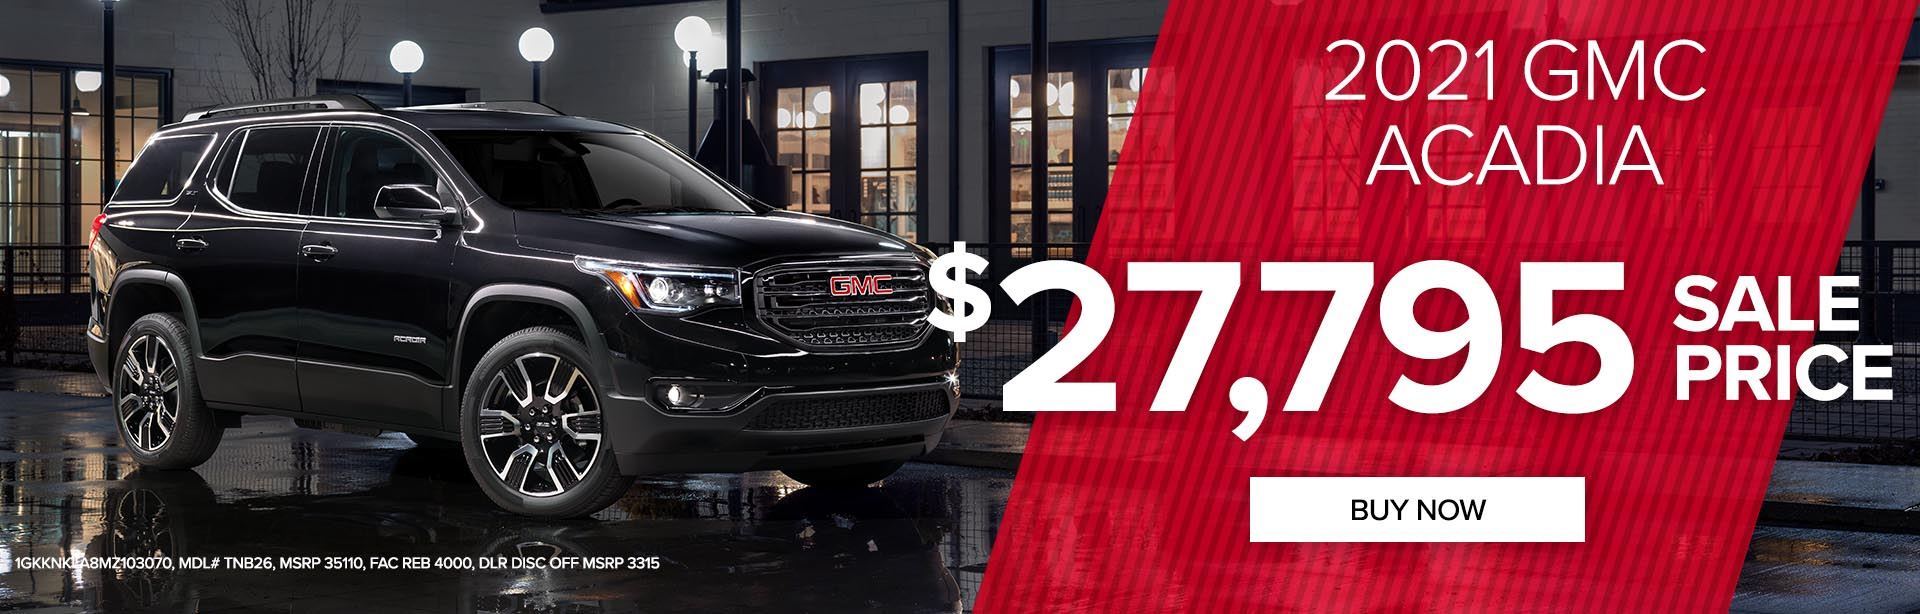 Get a 2021 GMC Acadia for only $27,795